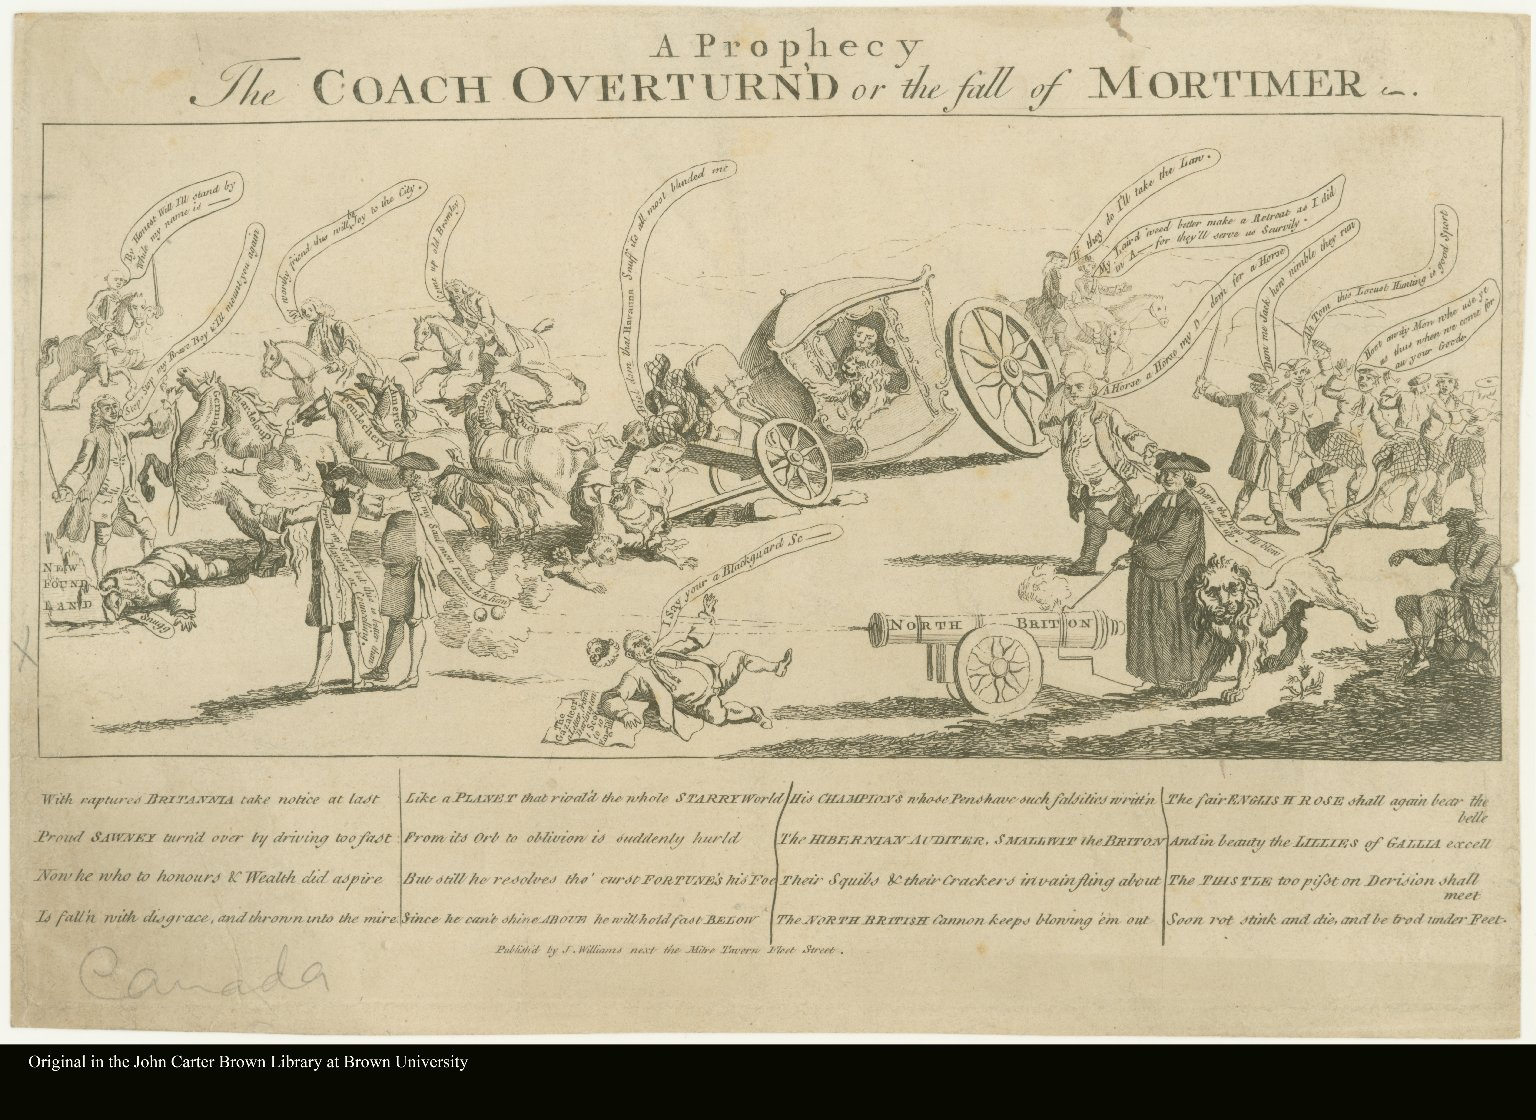 A Prophesy. The COACH OVERTURN'D or the fall of MORTIMER.